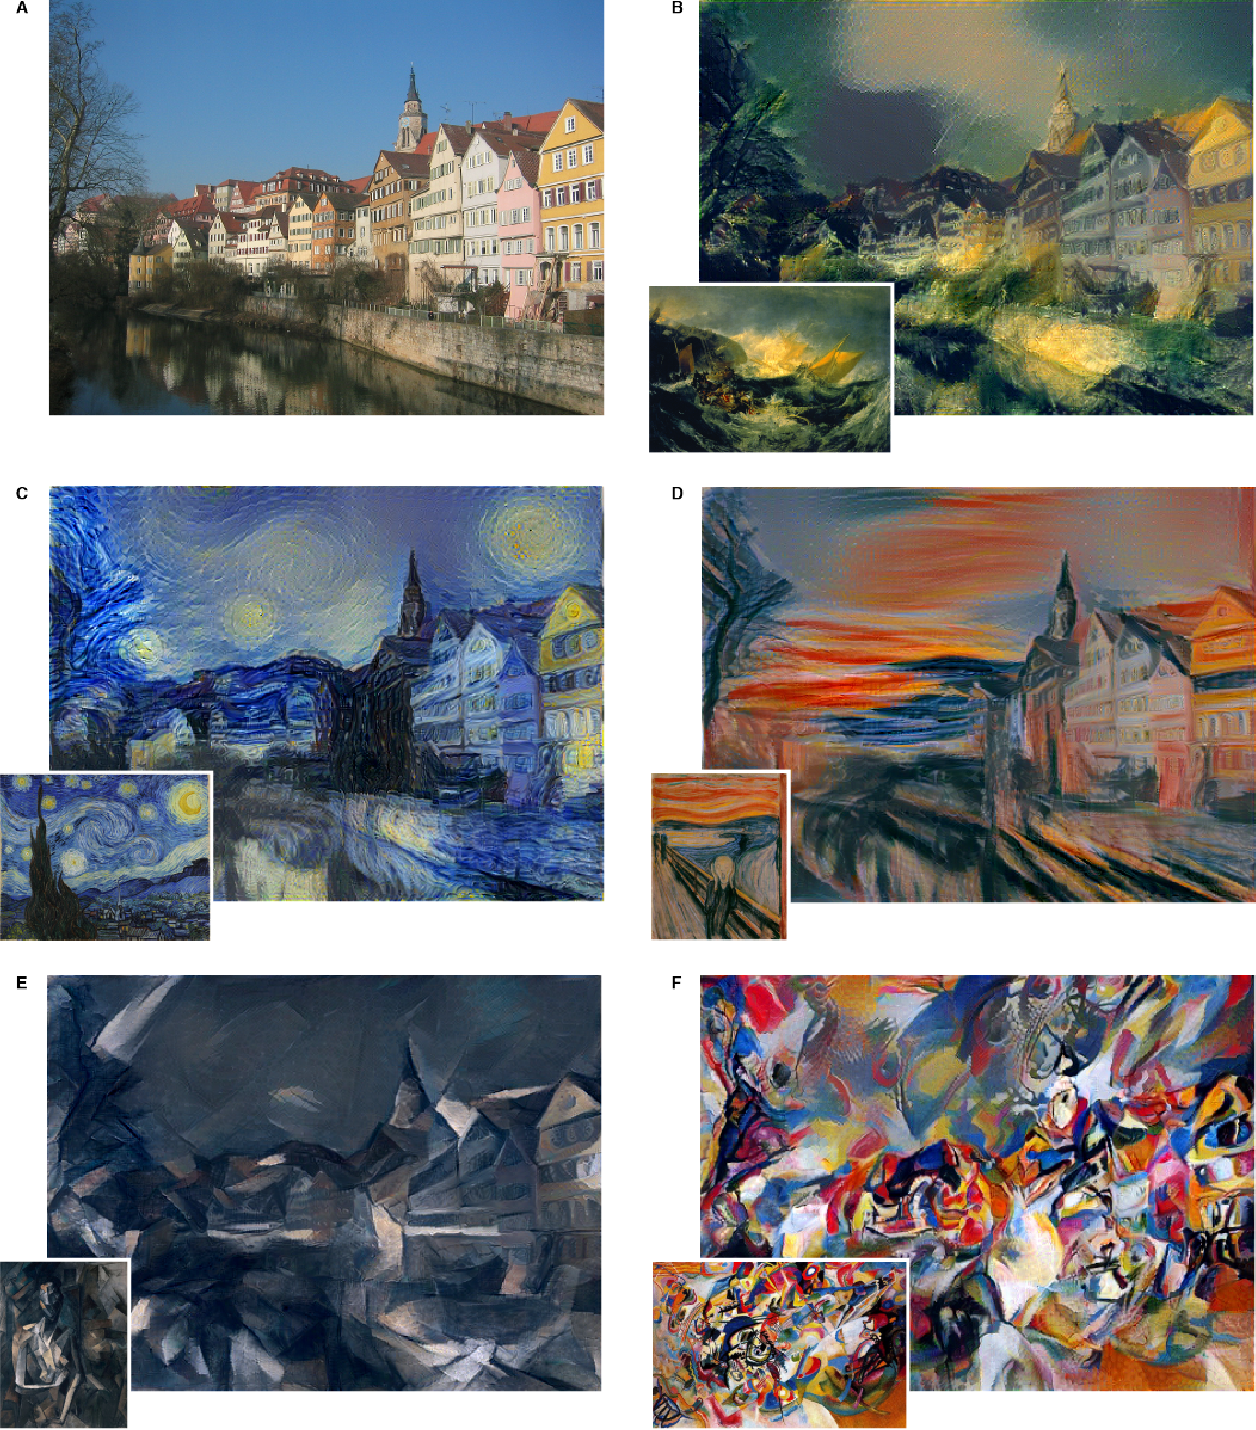 Figure 2: Images that combine the content of a photograph with the style of several well-known artworks. The images were created by finding an image that simultaneously matches the content representation of the photograph and the style representation of the artwork (see Methods). The original photograph depicting the Neckarfront in Tübingen, Germany, is shown in A (Photo: Andreas Praefcke). The painting that provided the style for the respective generated image is shown in the bottom left corner of each panel. B The Shipwreck of the Minotaur by J.M.W. Turner, 1805. C The Starry Night by Vincent van Gogh, 1889. D Der Schrei by Edvard Munch, 1893. E Femme nue assise by Pablo Picasso, 1910. F Composition VII by Wassily Kandinsky, 1913.